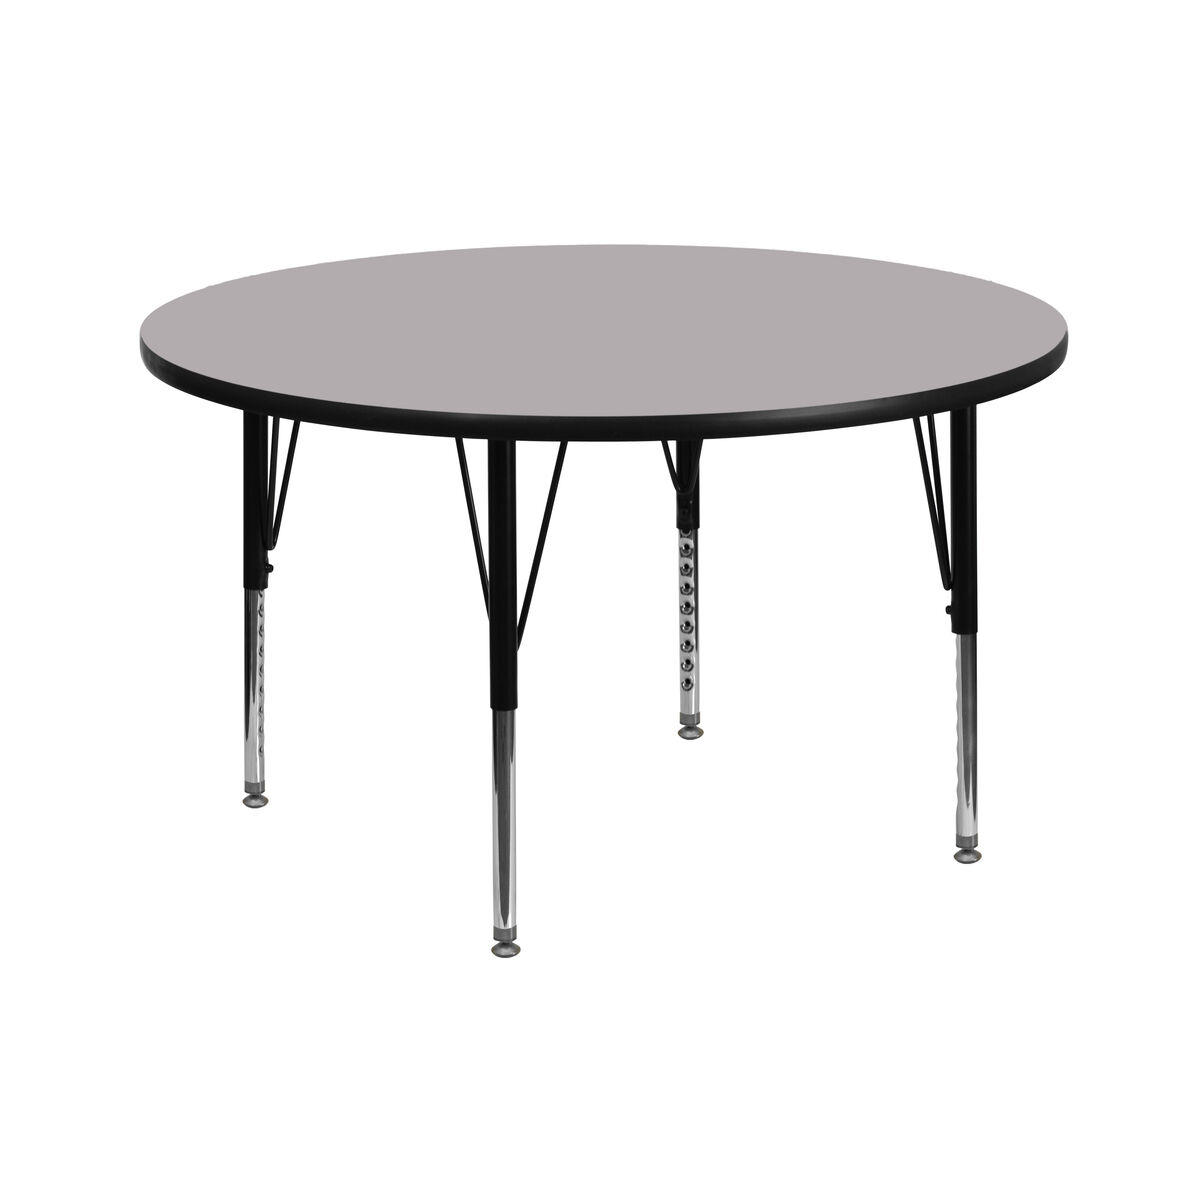 Flash furniture 42 39 39 round grey thermal laminate activity for Short table legs